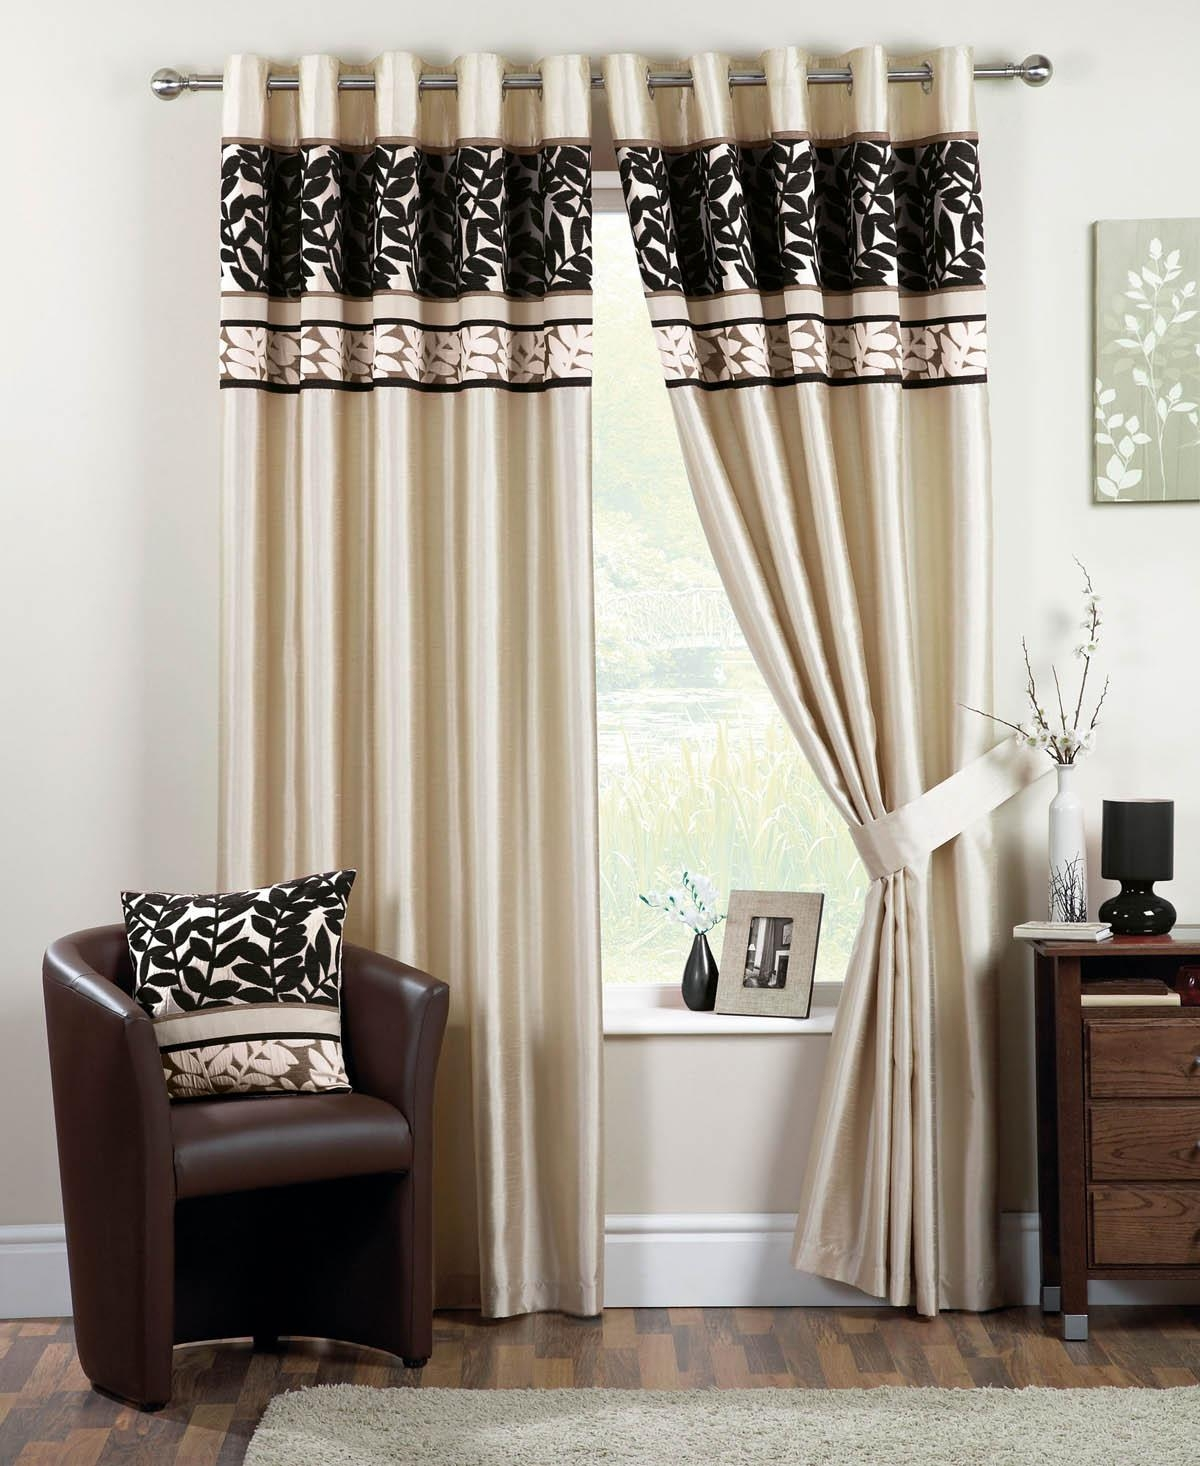 Black And Brown Curtains Home Design Ideas Gigforest Pertaining To Black And Brown Curtains (Image 2 of 15)